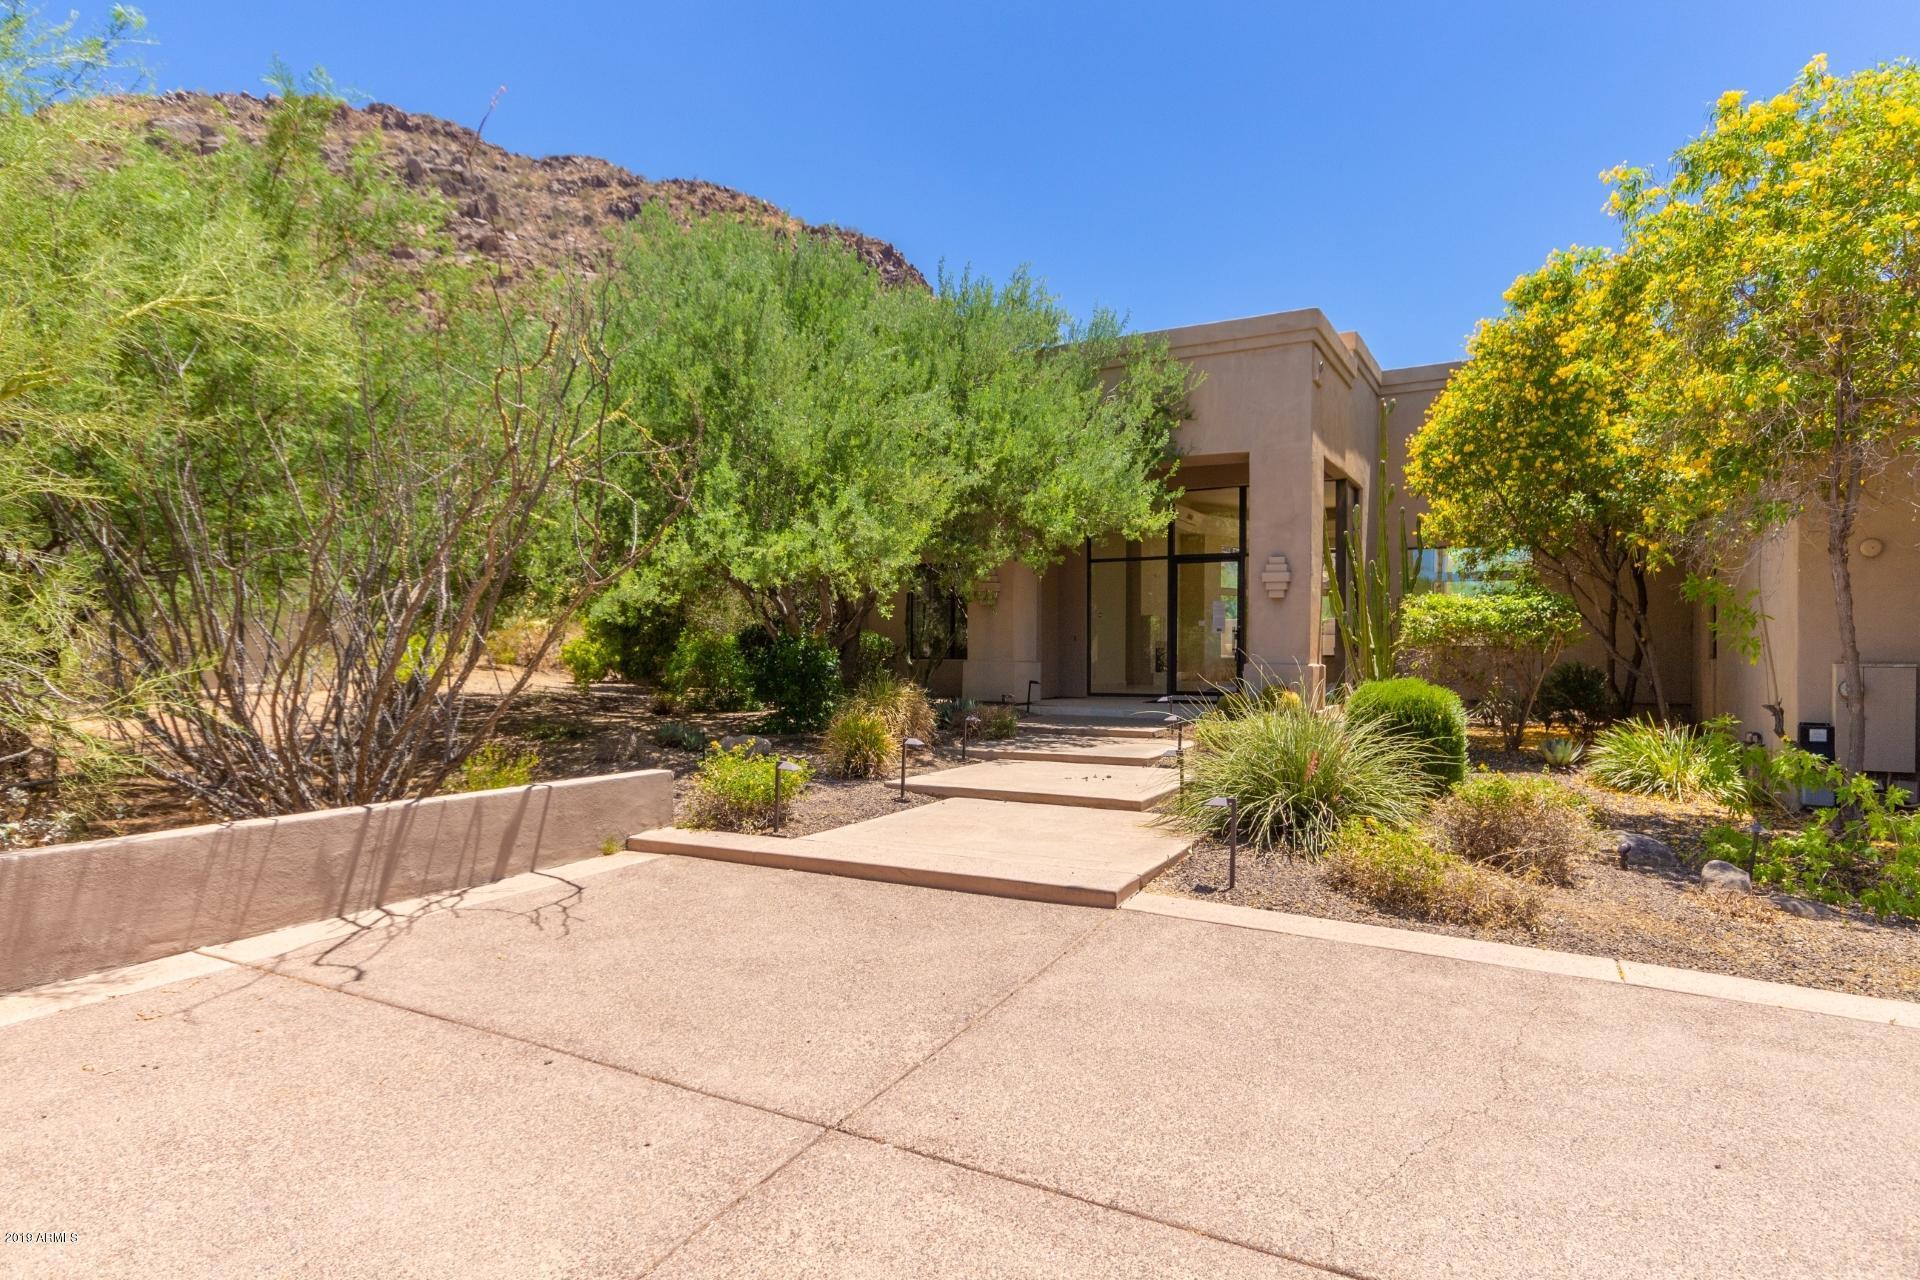 MLS 5949292 10040 E HAPPY VALLEY Road Unit 465, Scottsdale, AZ 85255 Scottsdale AZ REO Bank Owned Foreclosure